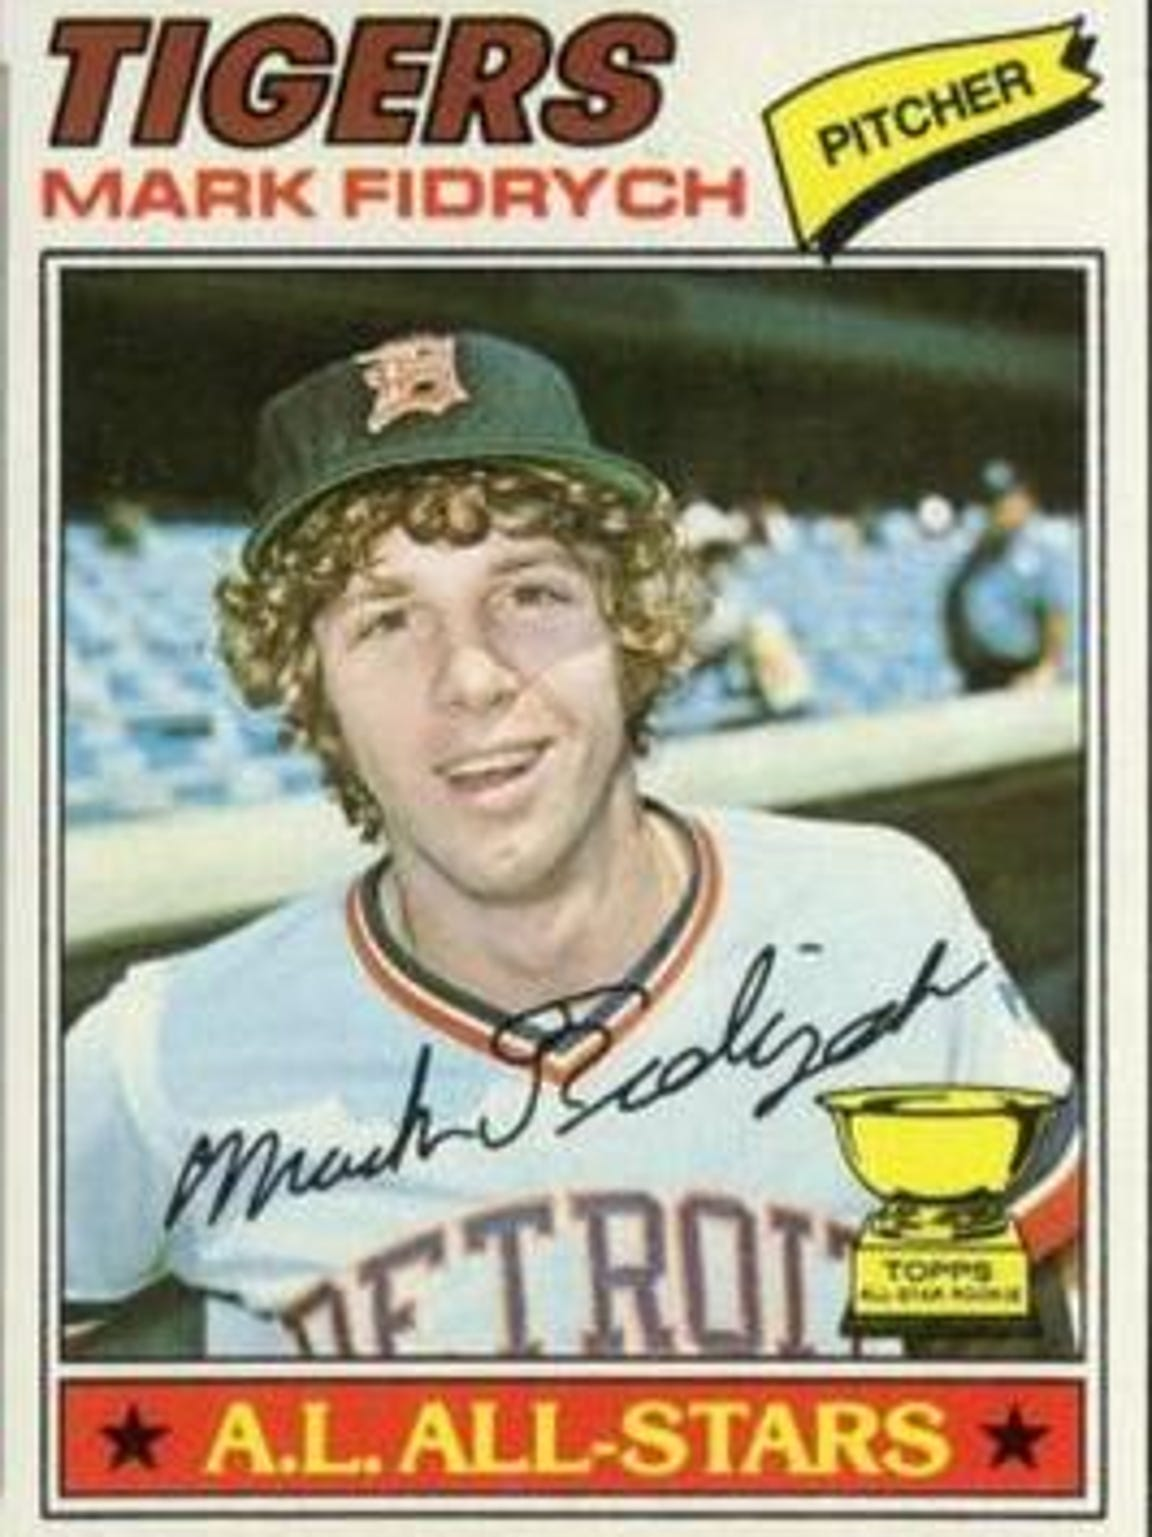 Fans were enthralled by Mark Fidrych's schoolboy enthusiasm